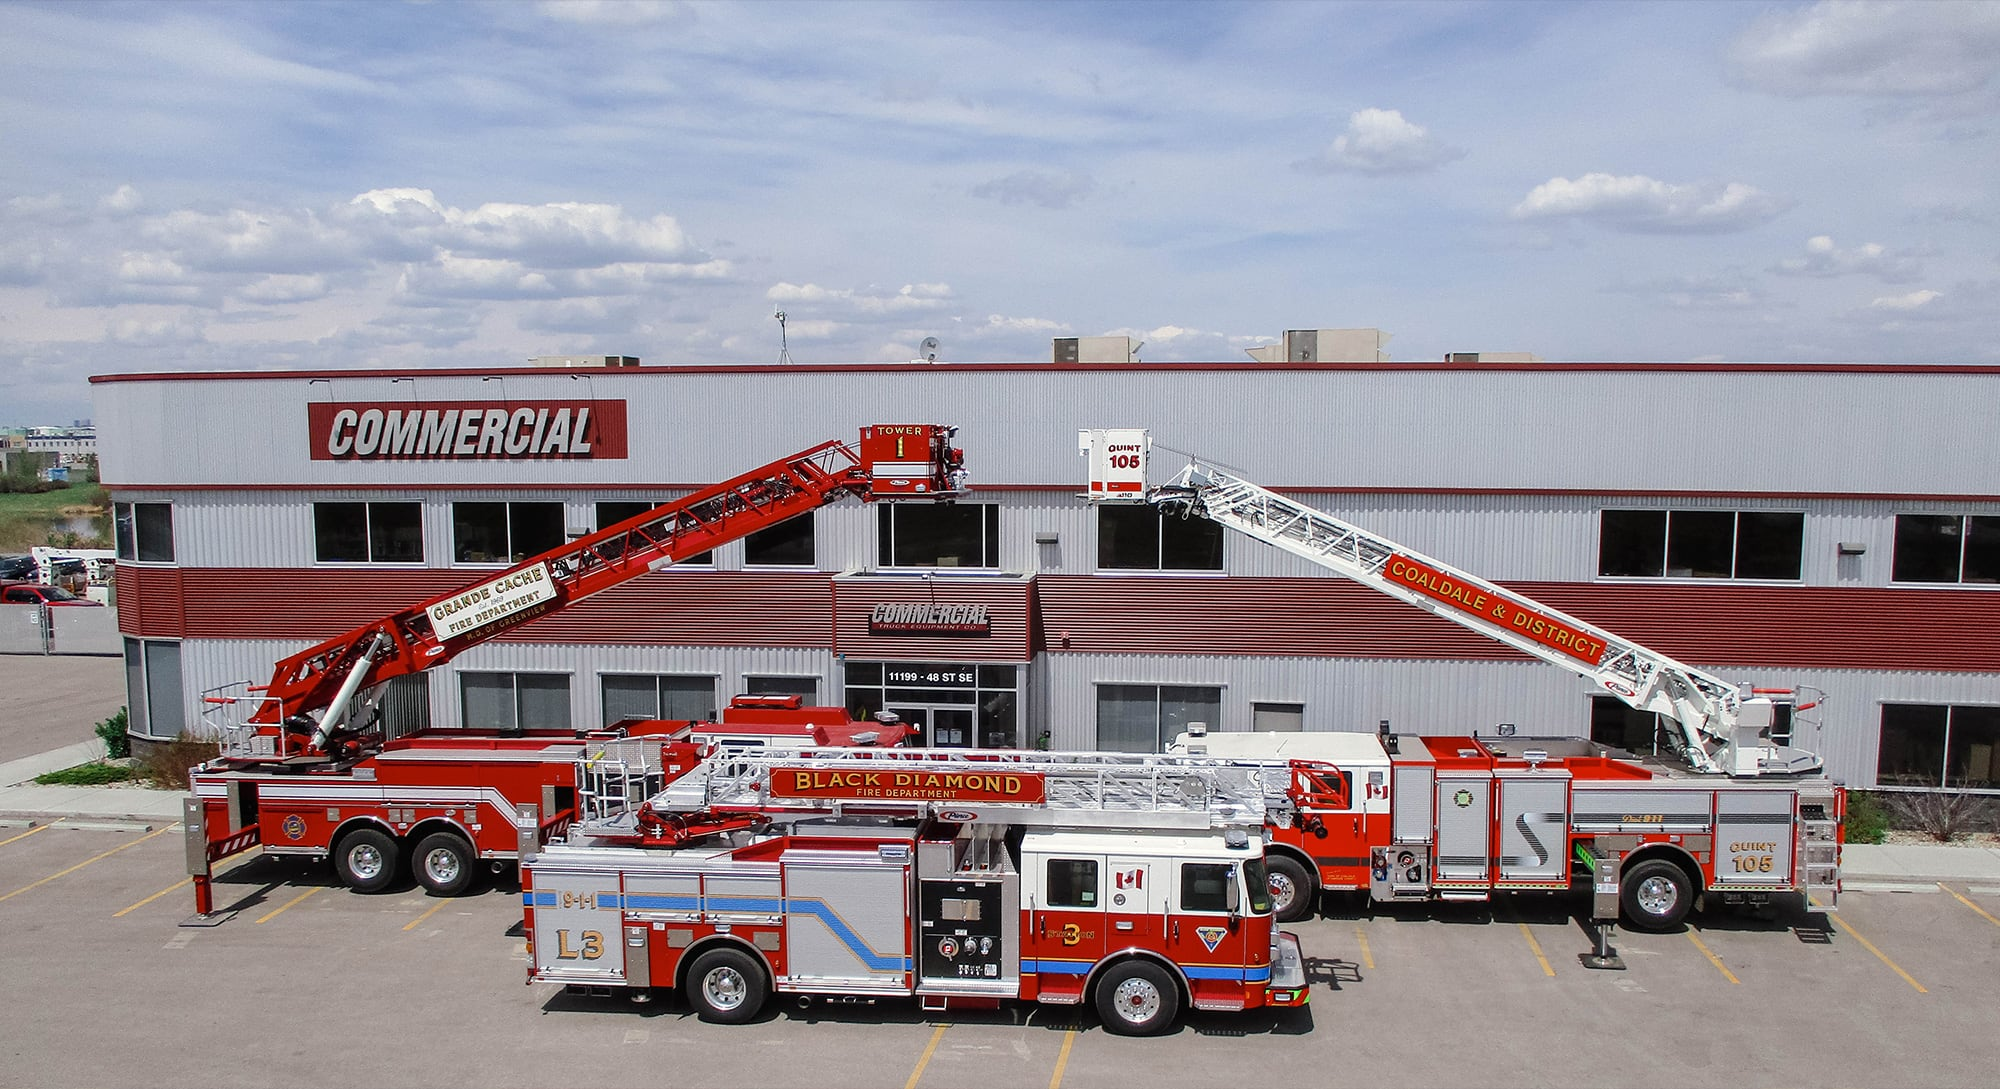 fire trucks on display at commercial emergency equipment